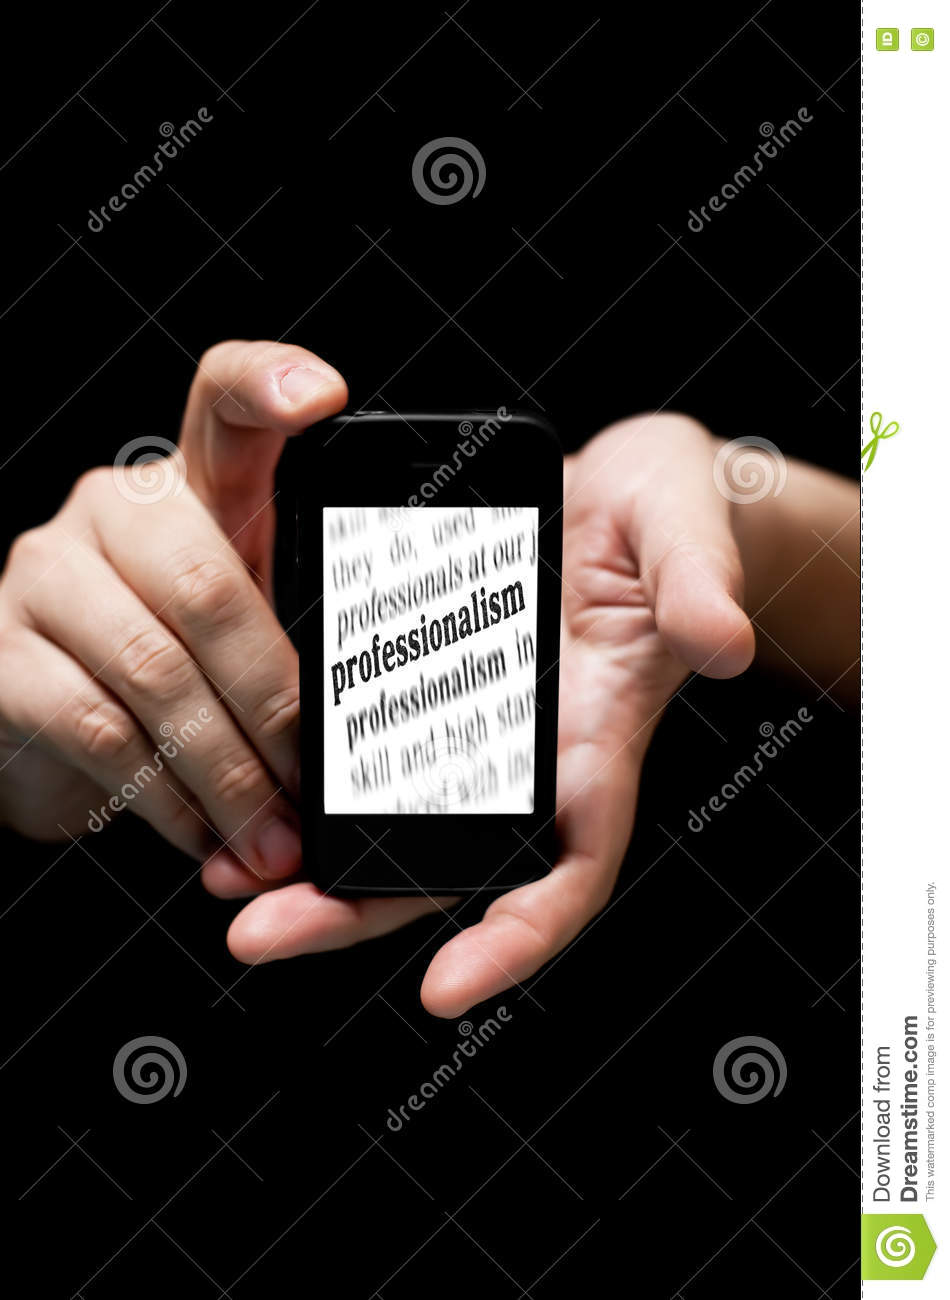 Hands Holding Smartphone, showing the word Professionalism prin